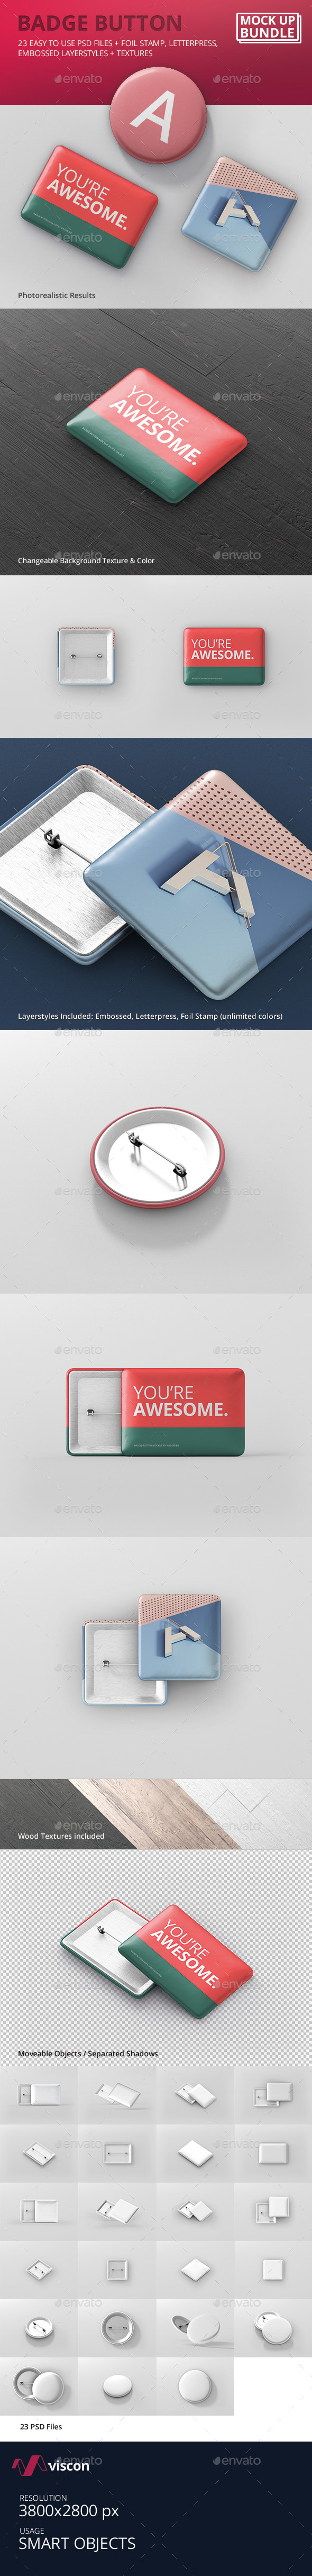 Badge Button Mockup Bundle - Stationery Print